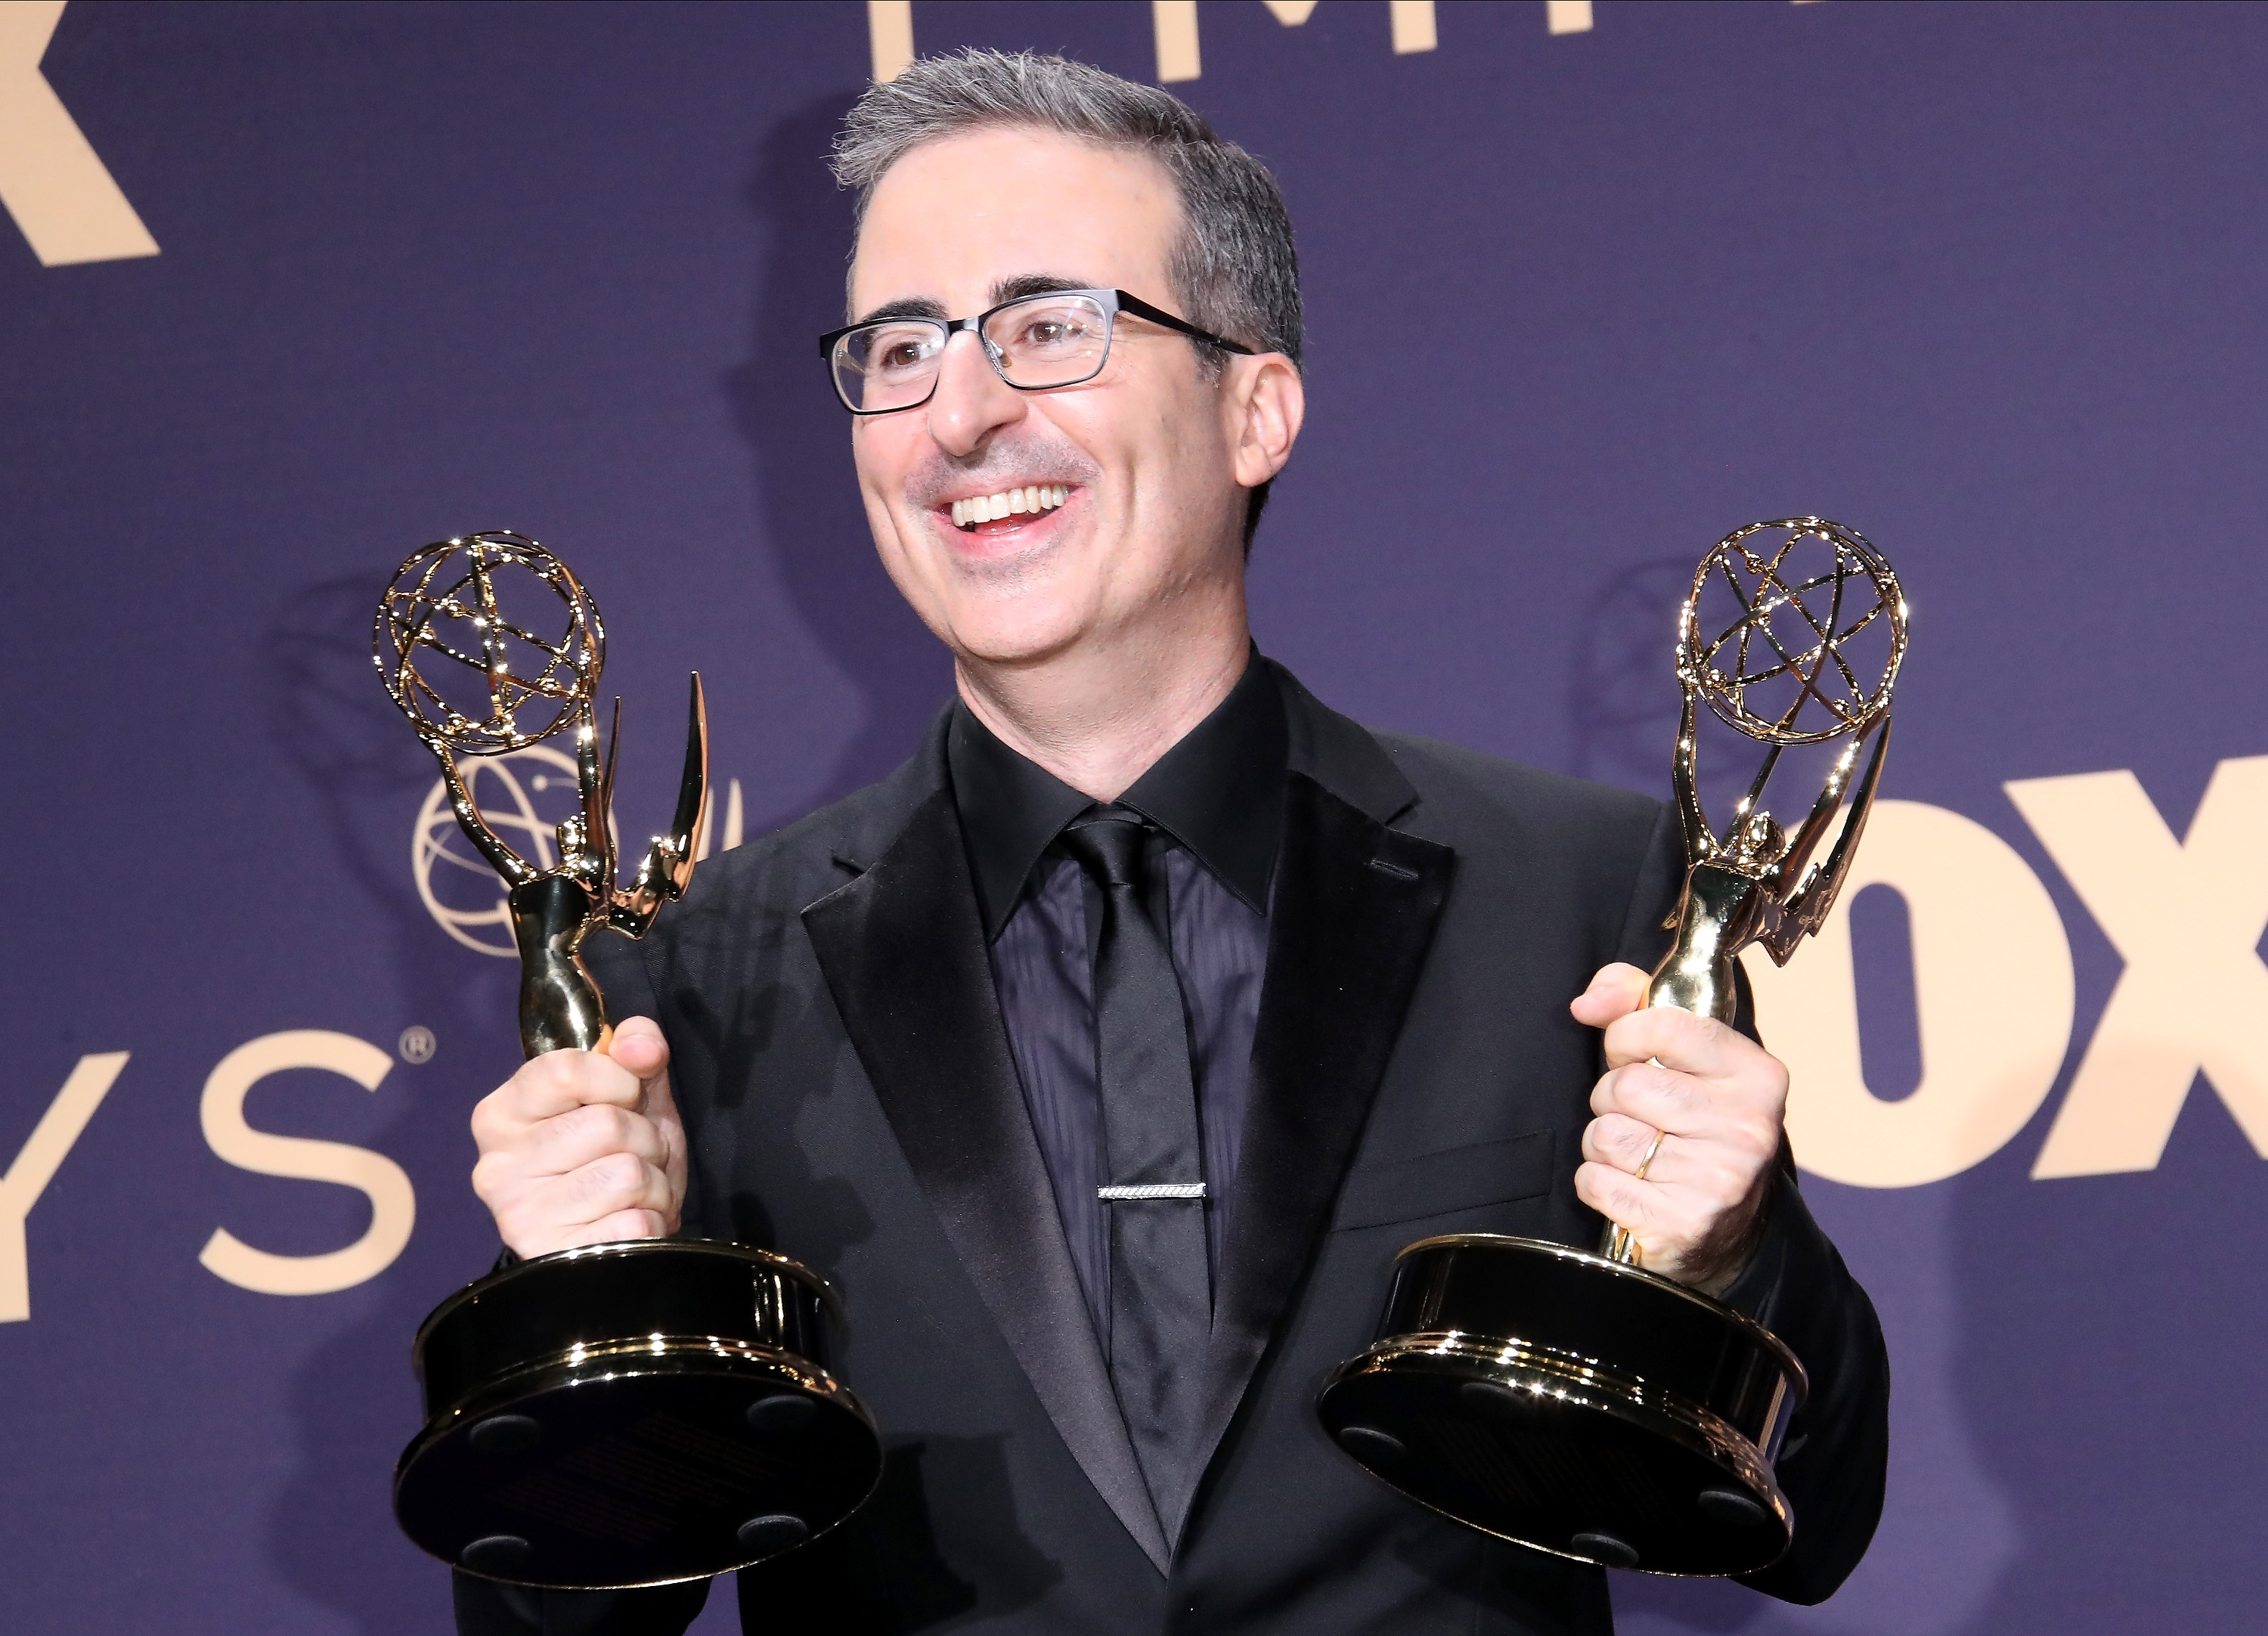 John Oliver poses with awards for Outstanding Variety Talk Series in the press room during the 71st Emmy Awards at Microsoft Theater on September 22, 2019 in Los Angeles, California.